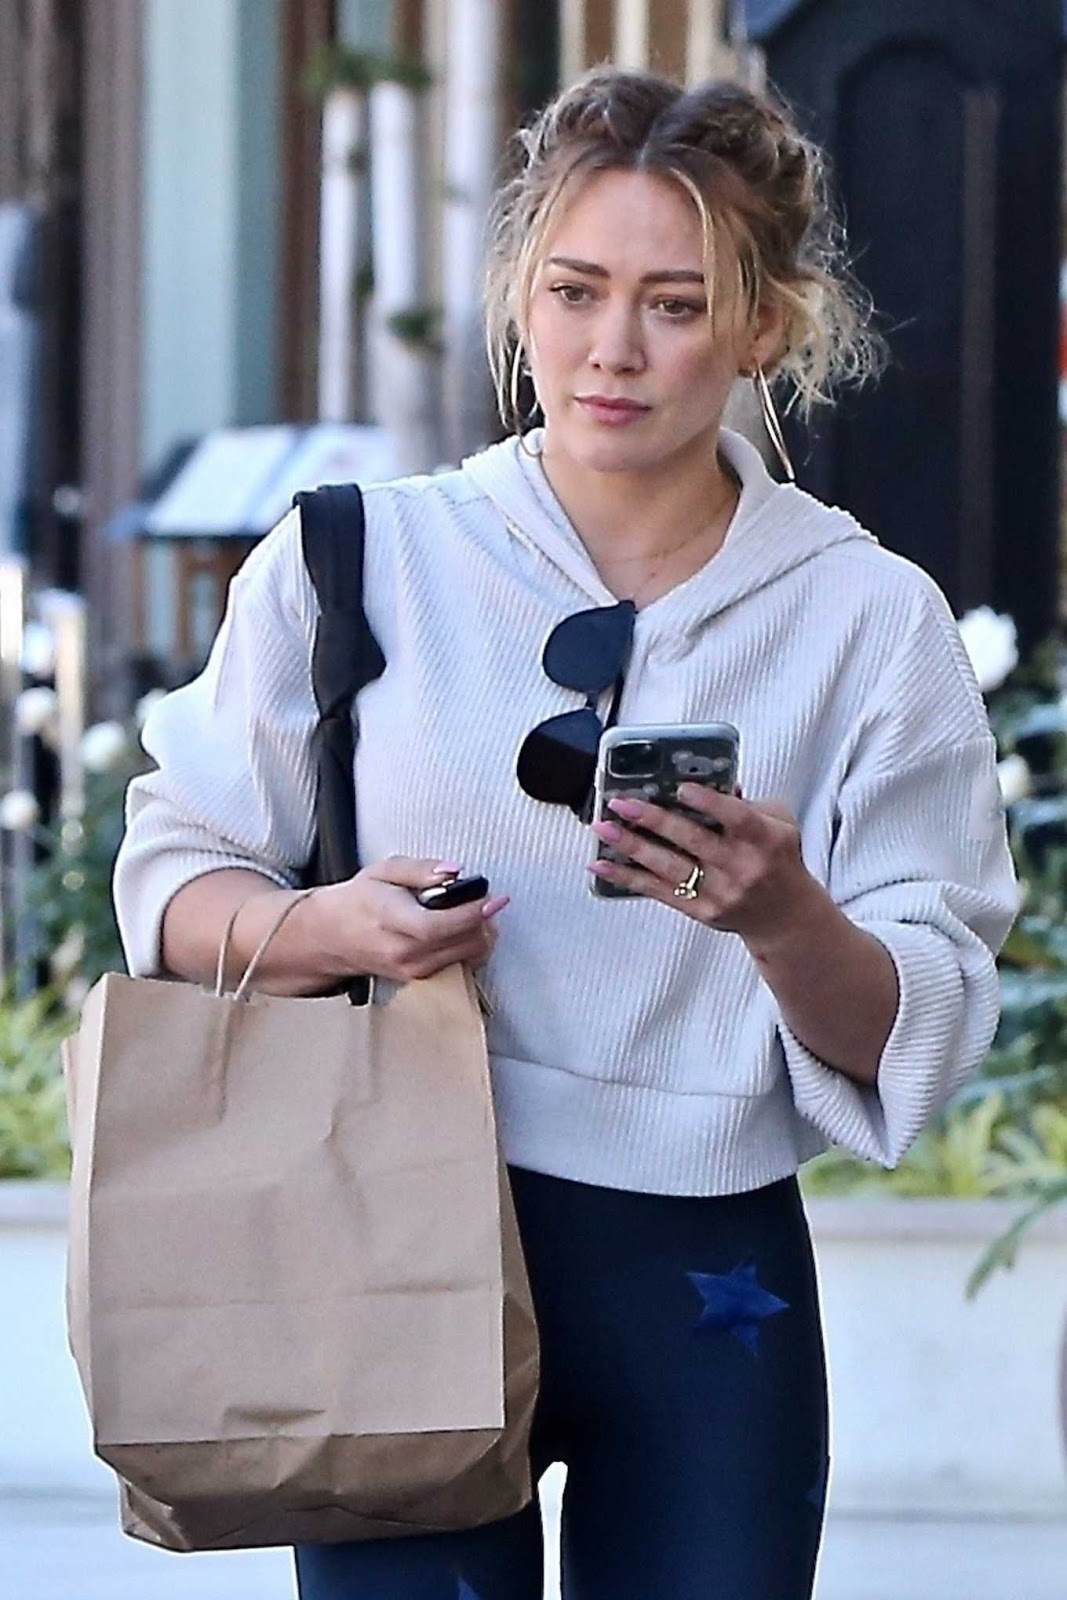 Hilary Duff spotted with a new hairstyle